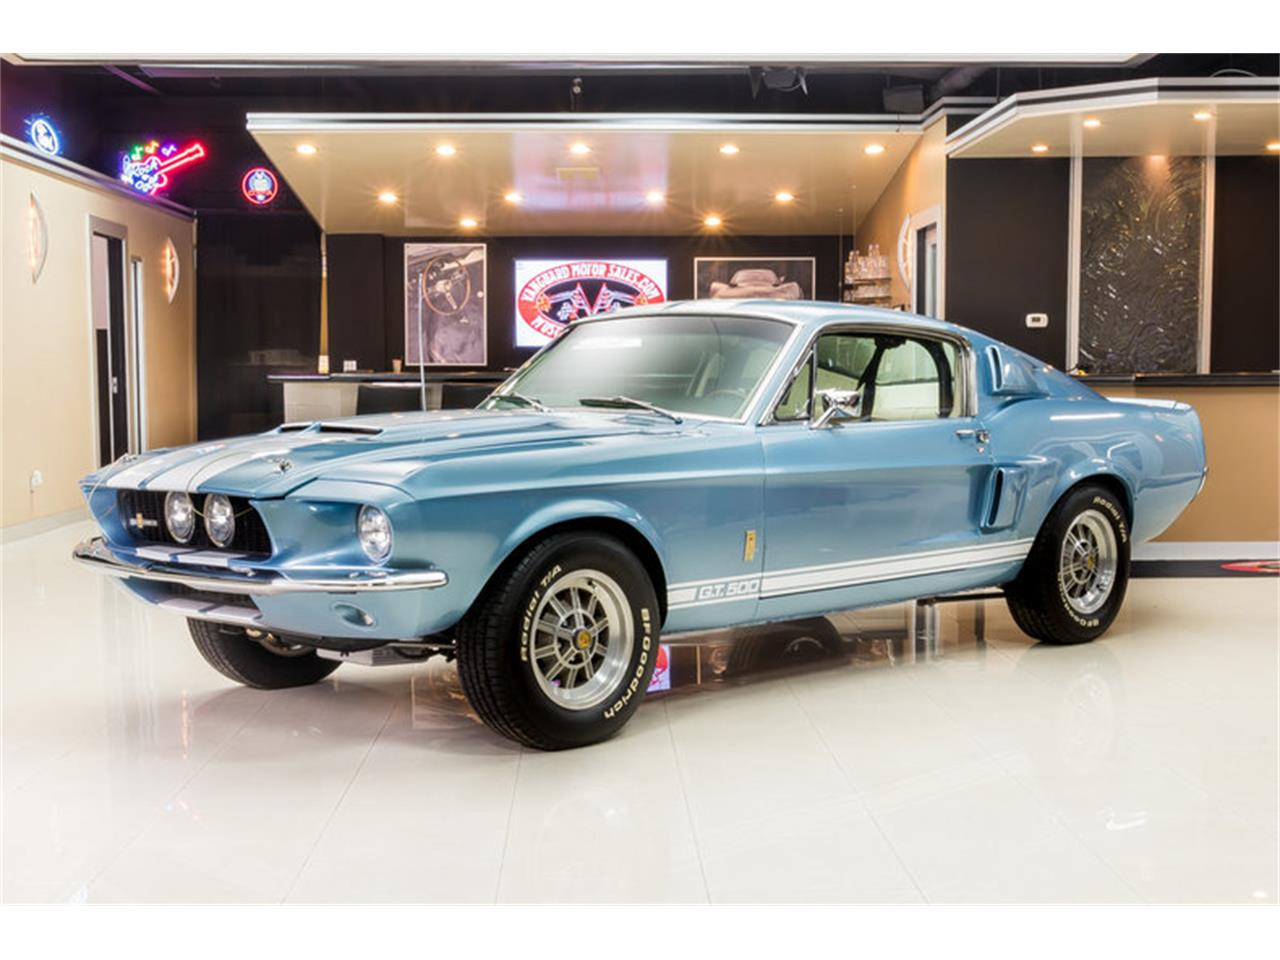 Large picture of 67 mustang fastback shelby gt500 recreation kh6o